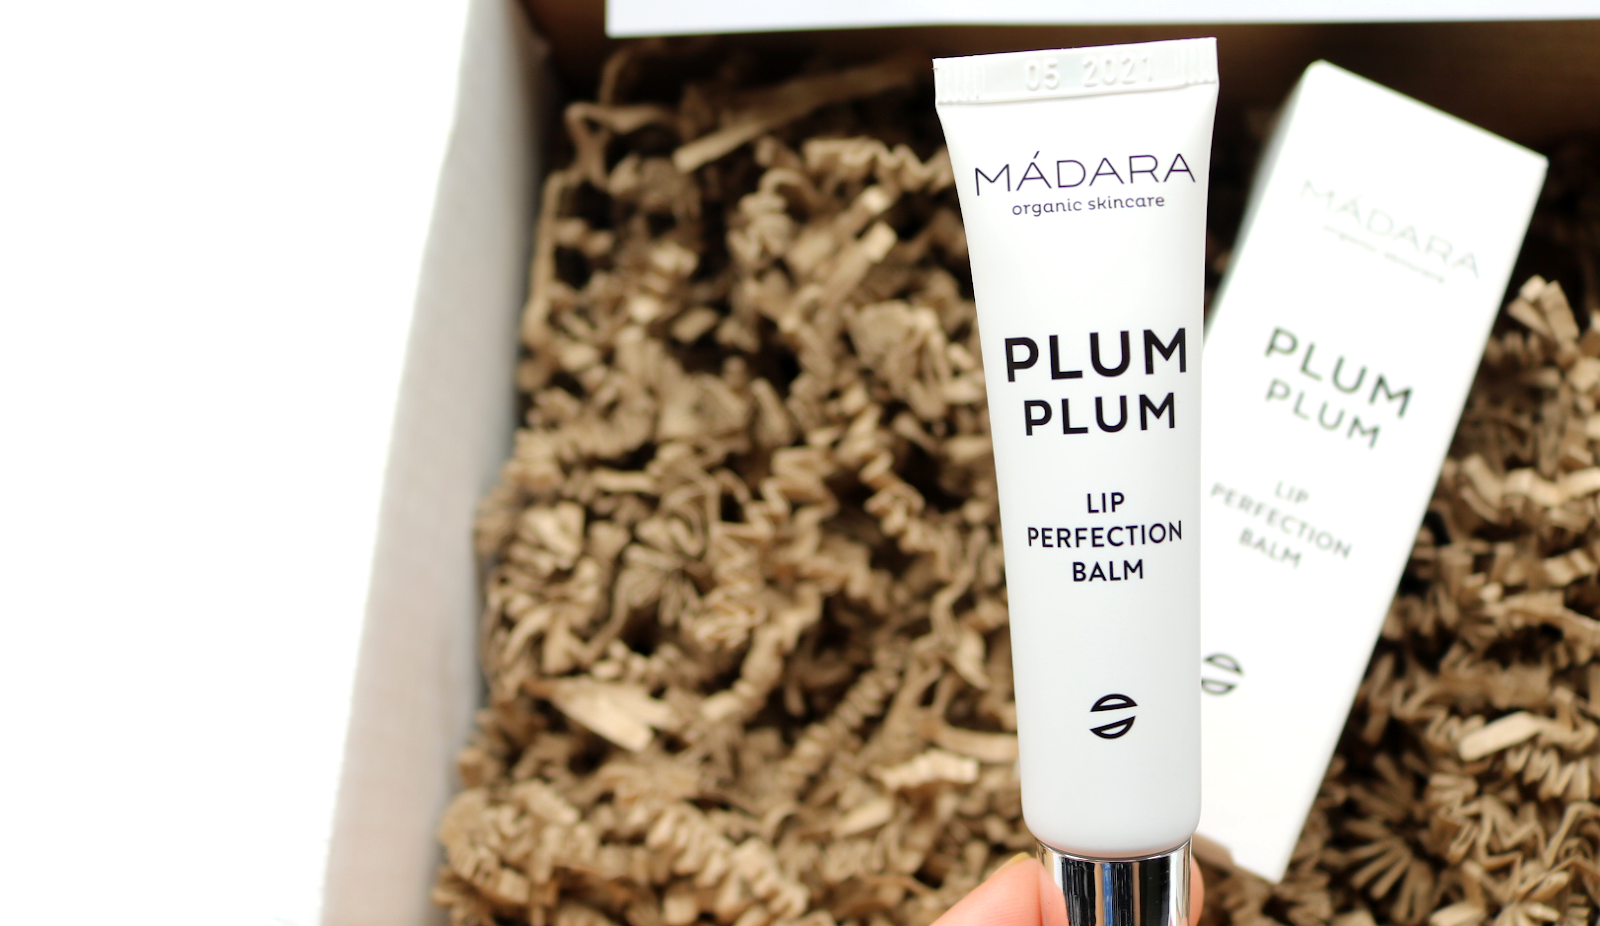 Madara Plum Plum Lip Perfection Balm